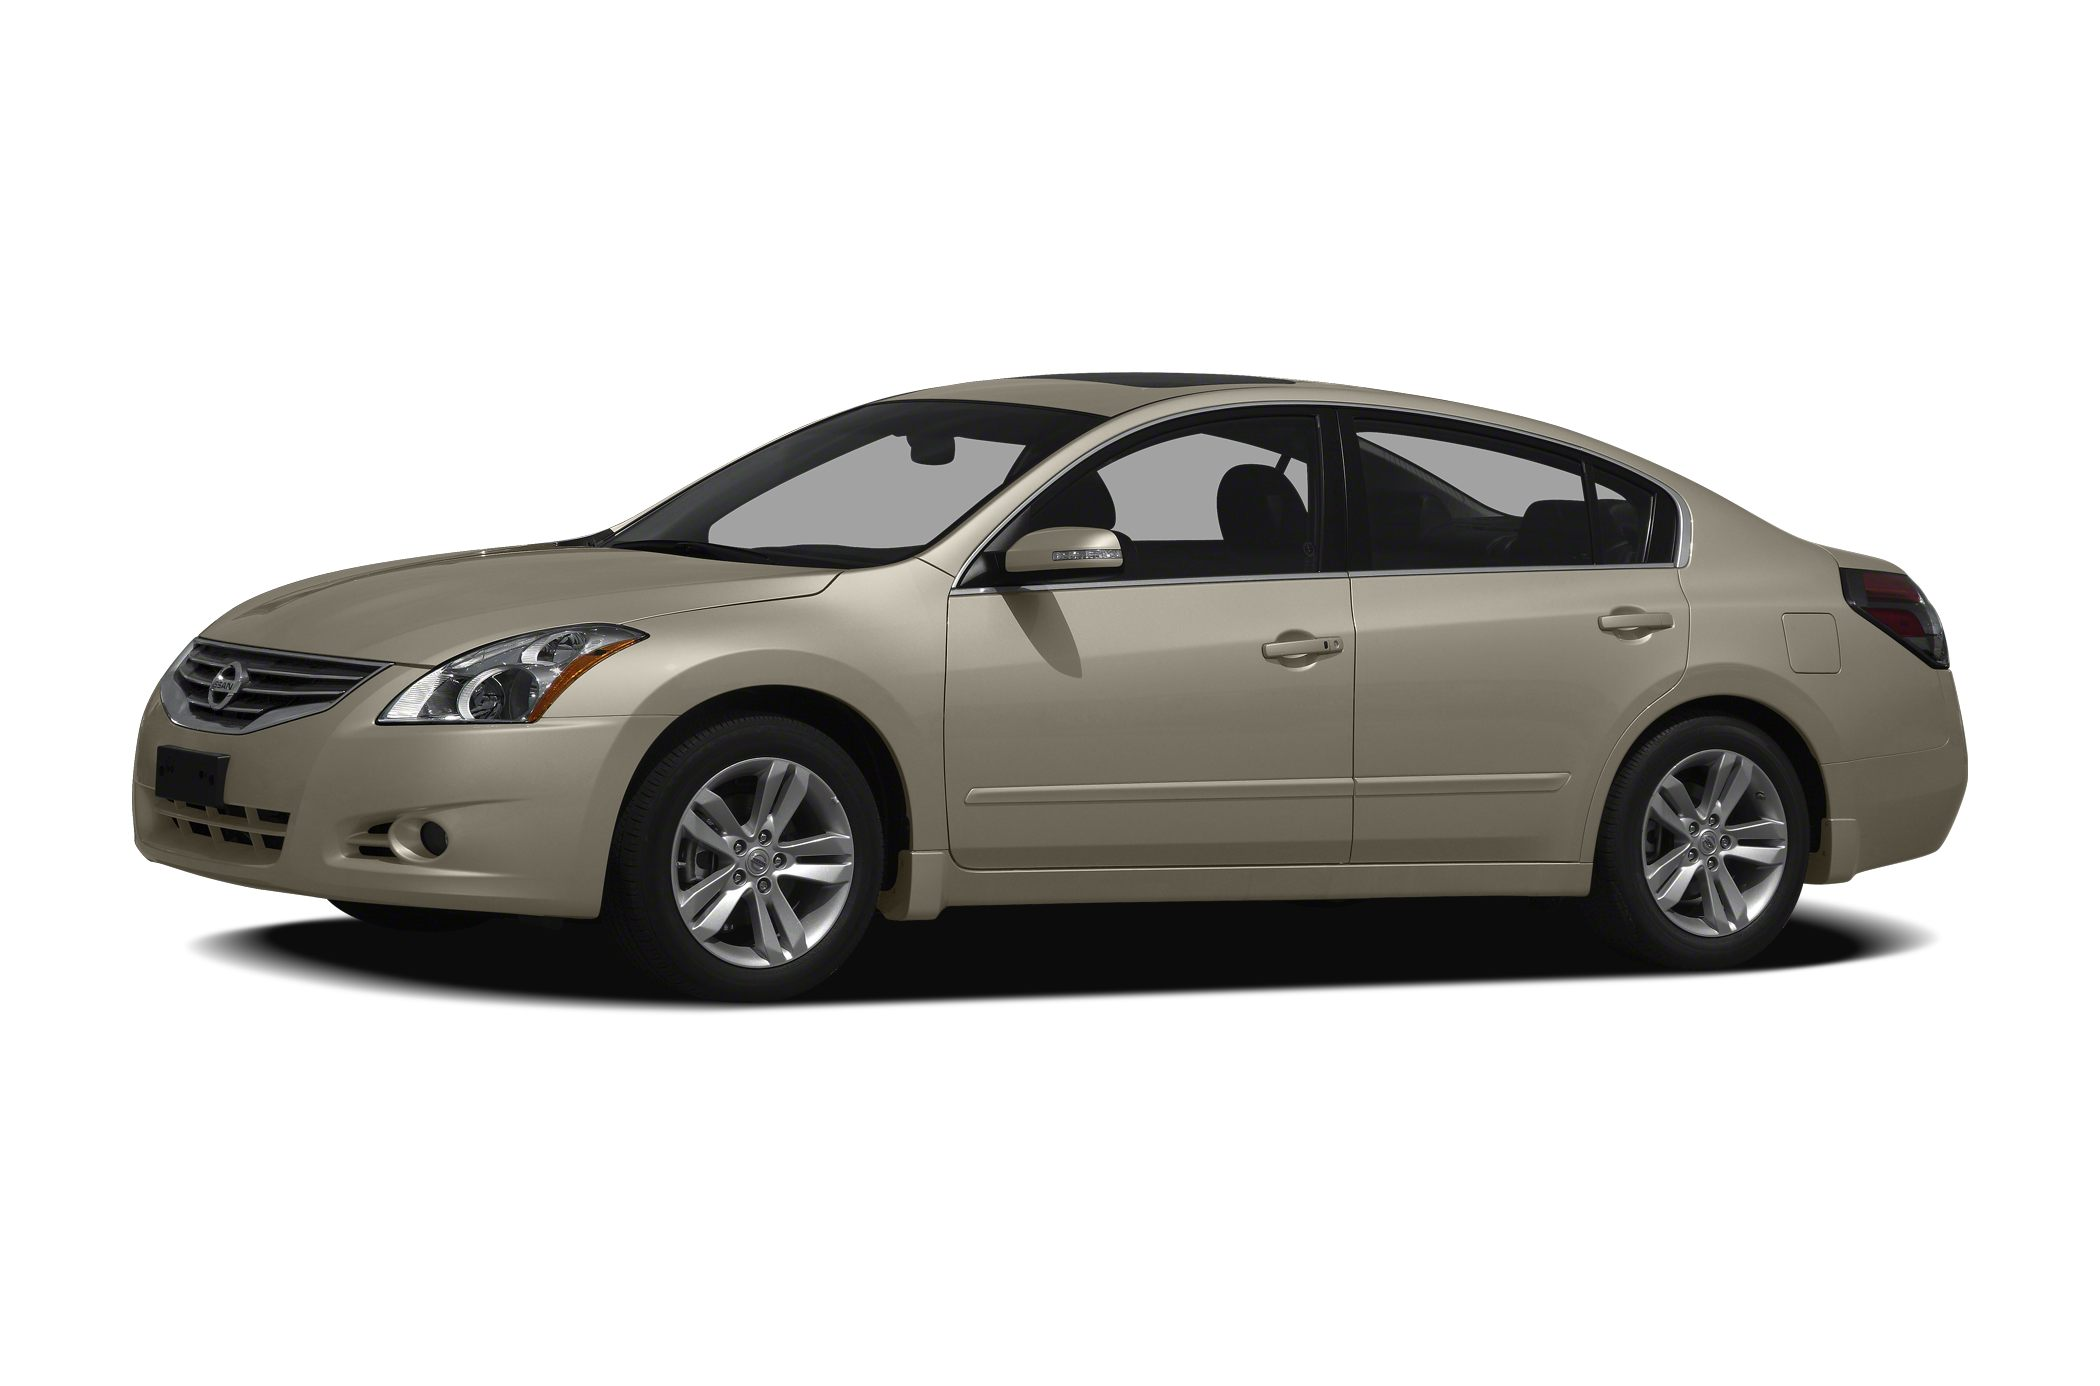 2010 Nissan Altima 3.5 SR Sedan for sale in Dayton for $15,500 with 61,269 miles.